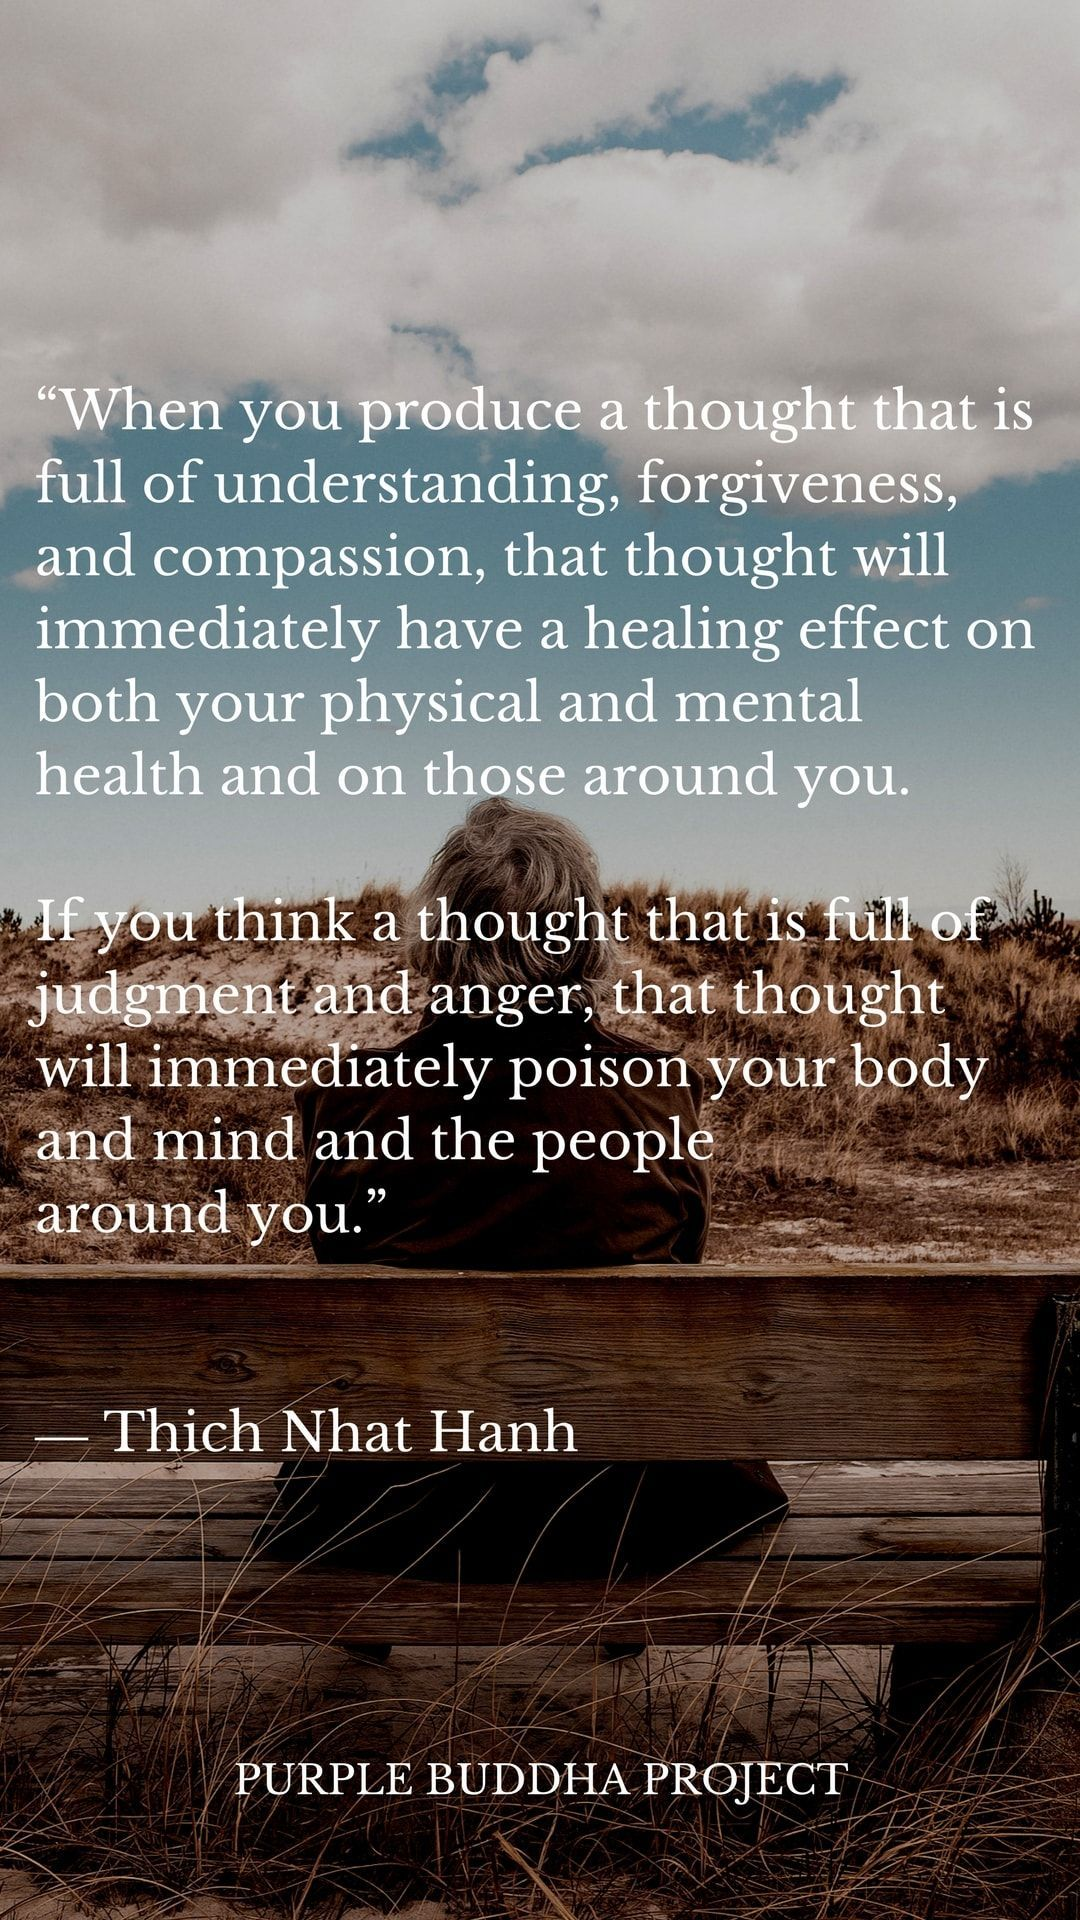 Real Buddha Quotes 18 Quotes On Buddhism From Thich Nhat Hanh Of The Week  Purple